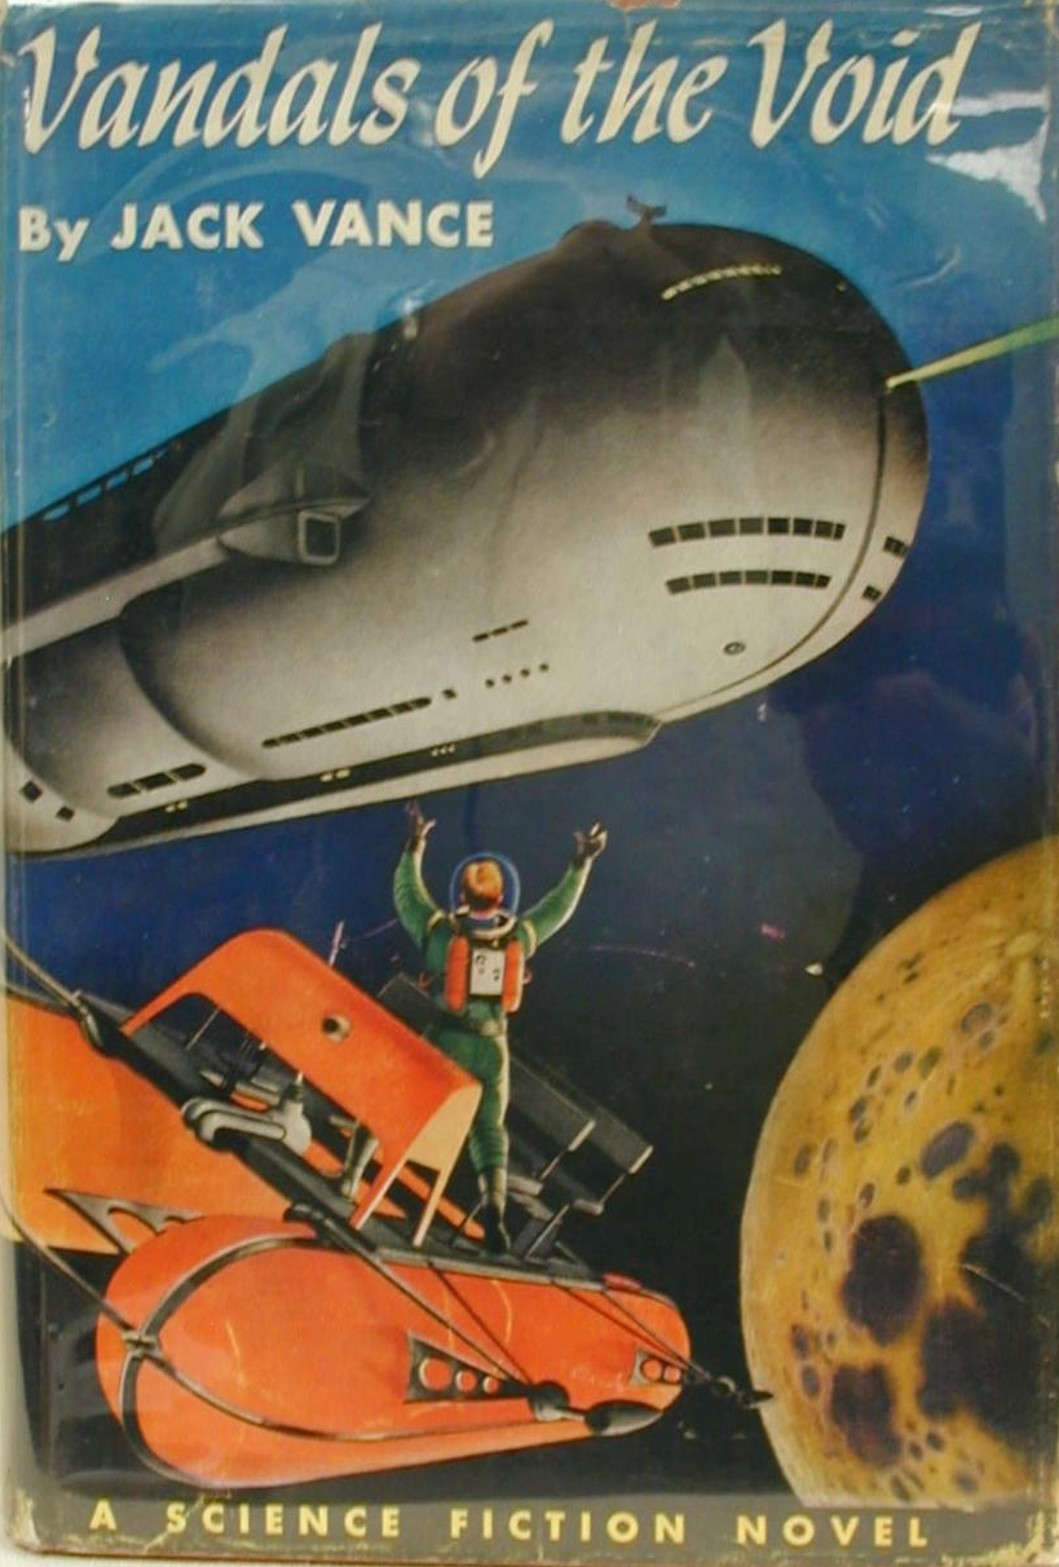 Rough Edges: Forgotten Books: Vandals of the Void - Jack Vance